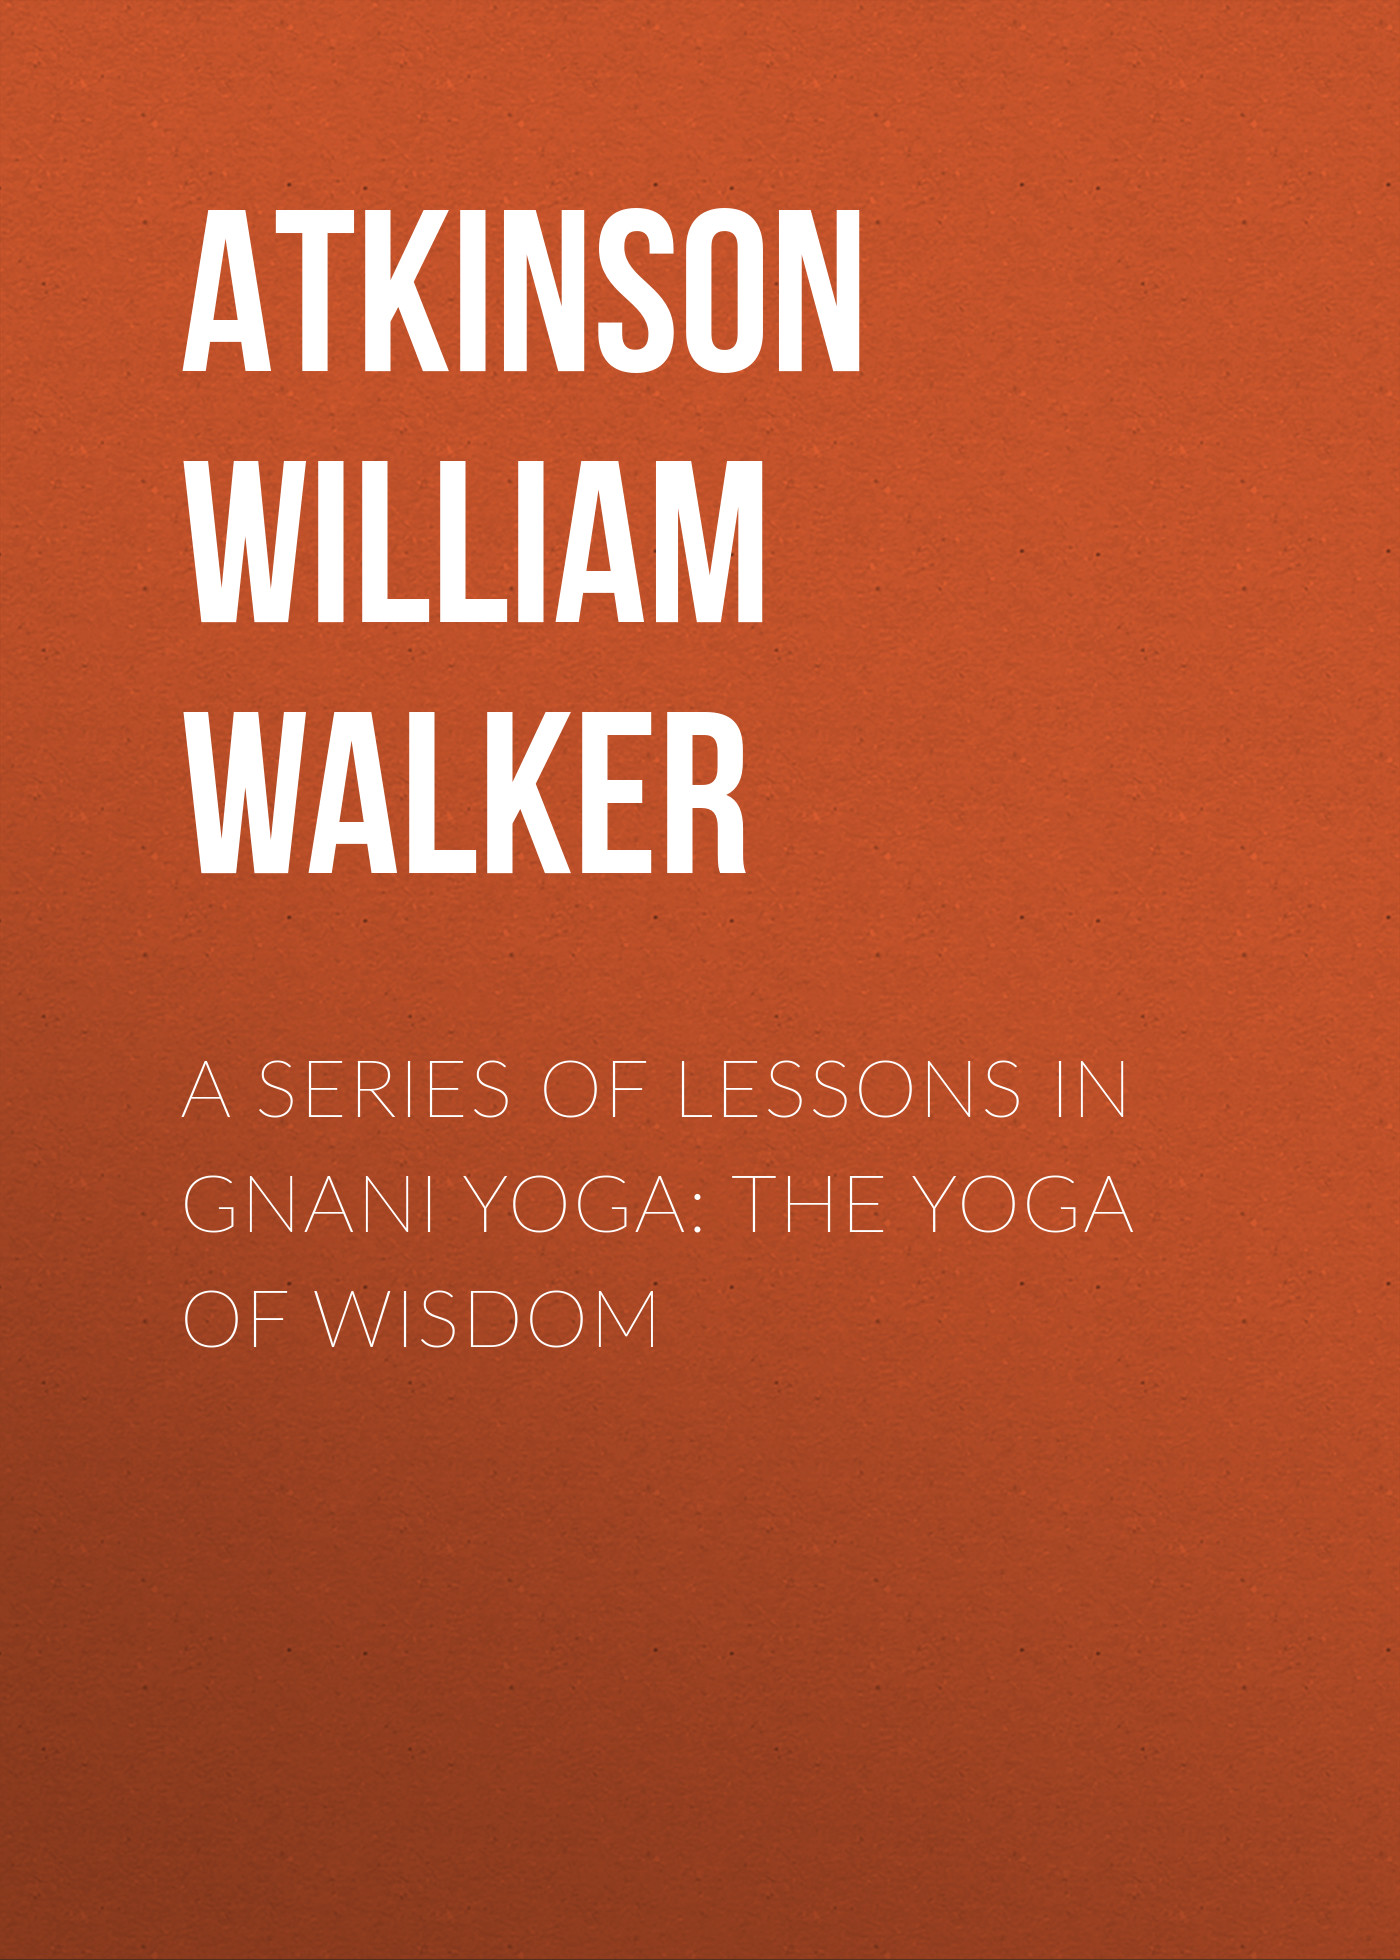 Atkinson William Walker A Series of Lessons in Gnani Yoga: The Yoga of Wisdom the tree of yoga